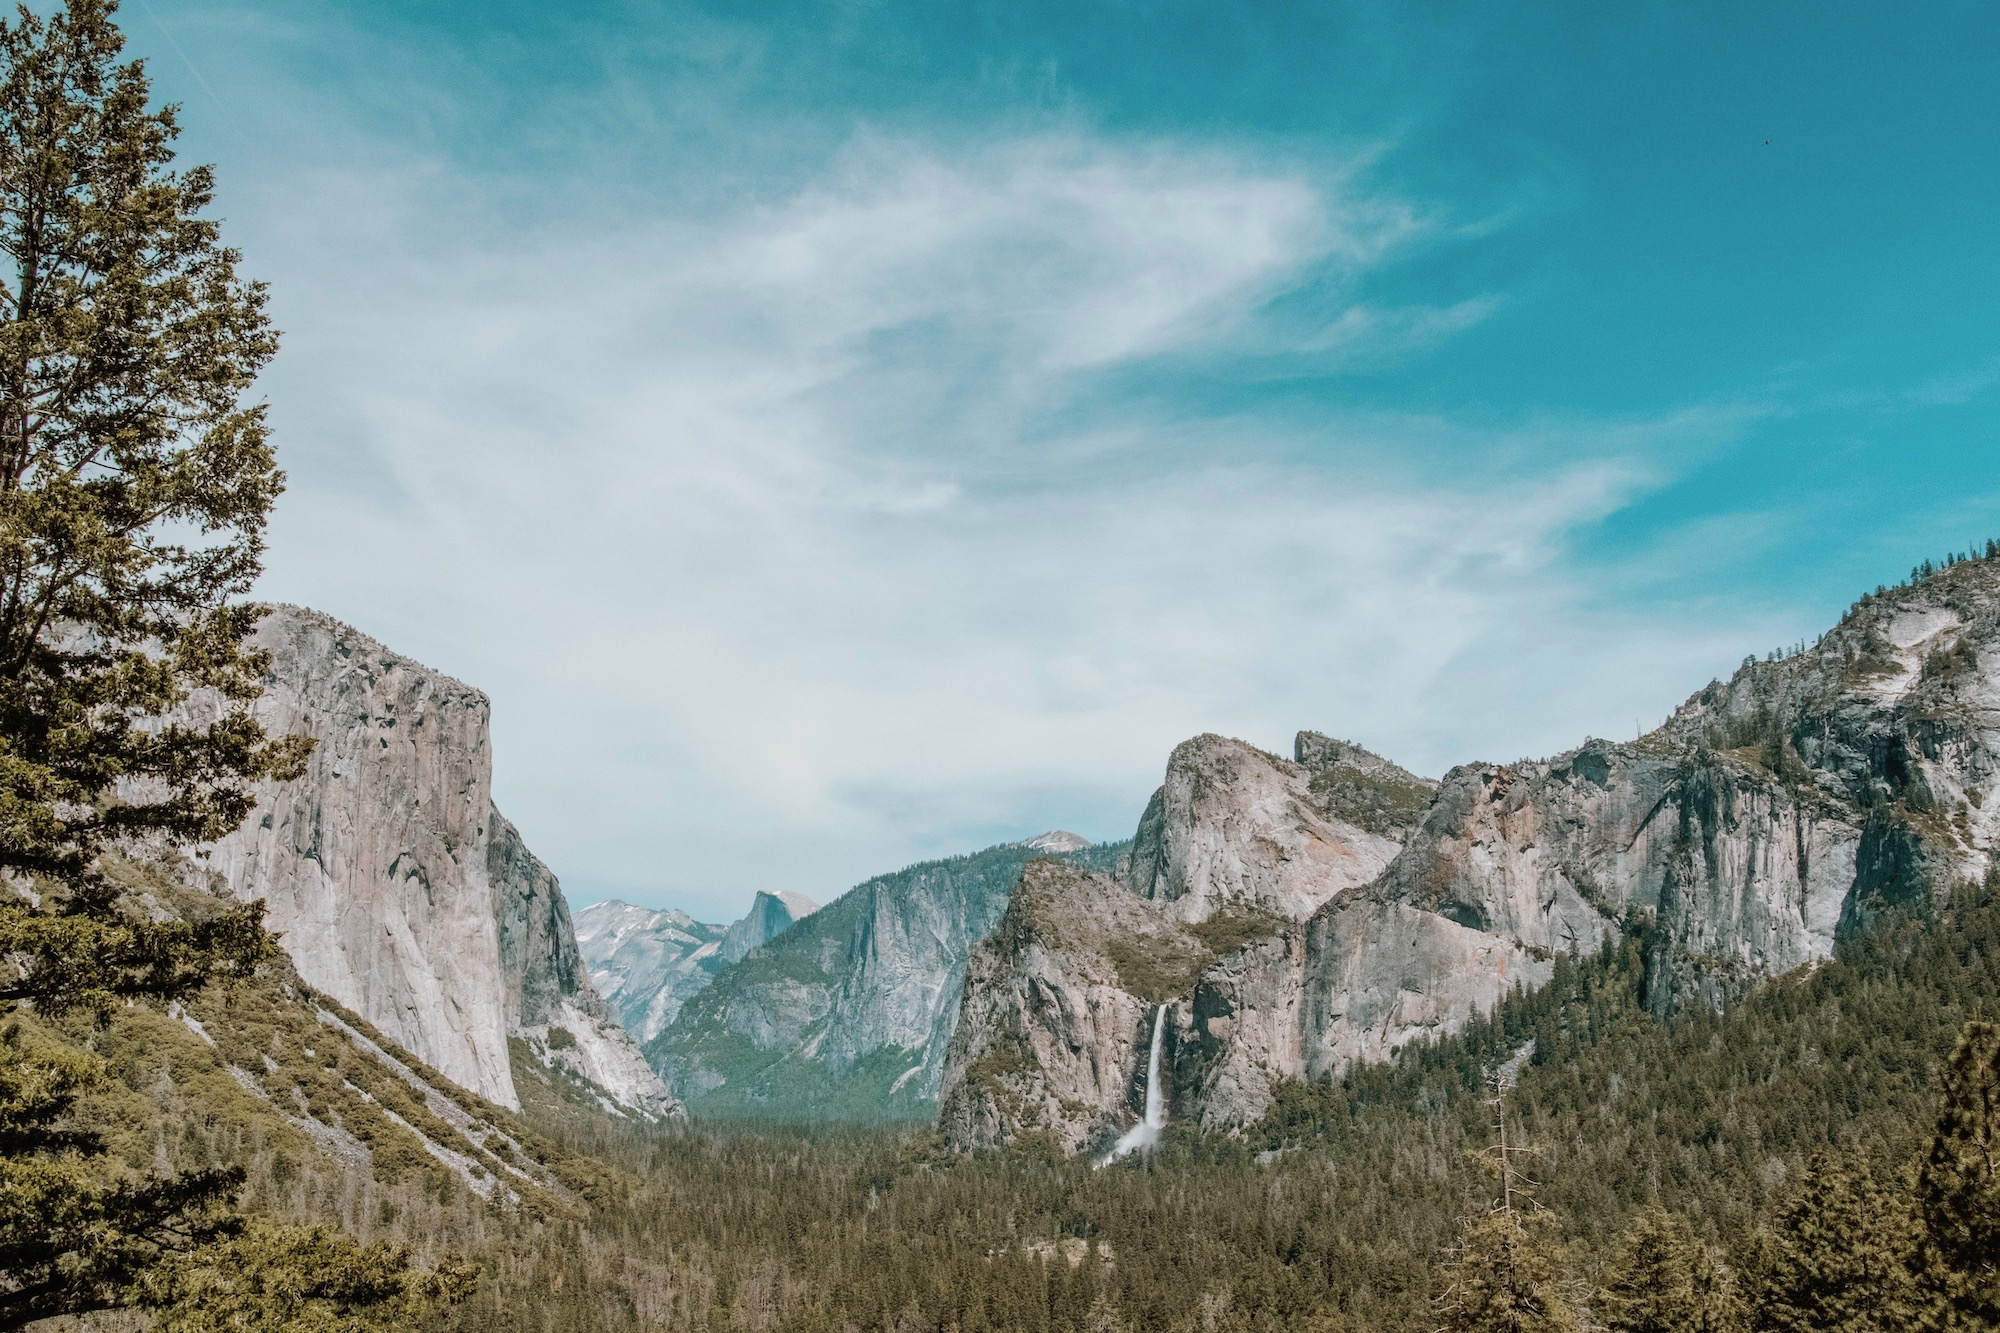 Tunnel View - Yosemite National Park | Cedar + Surf